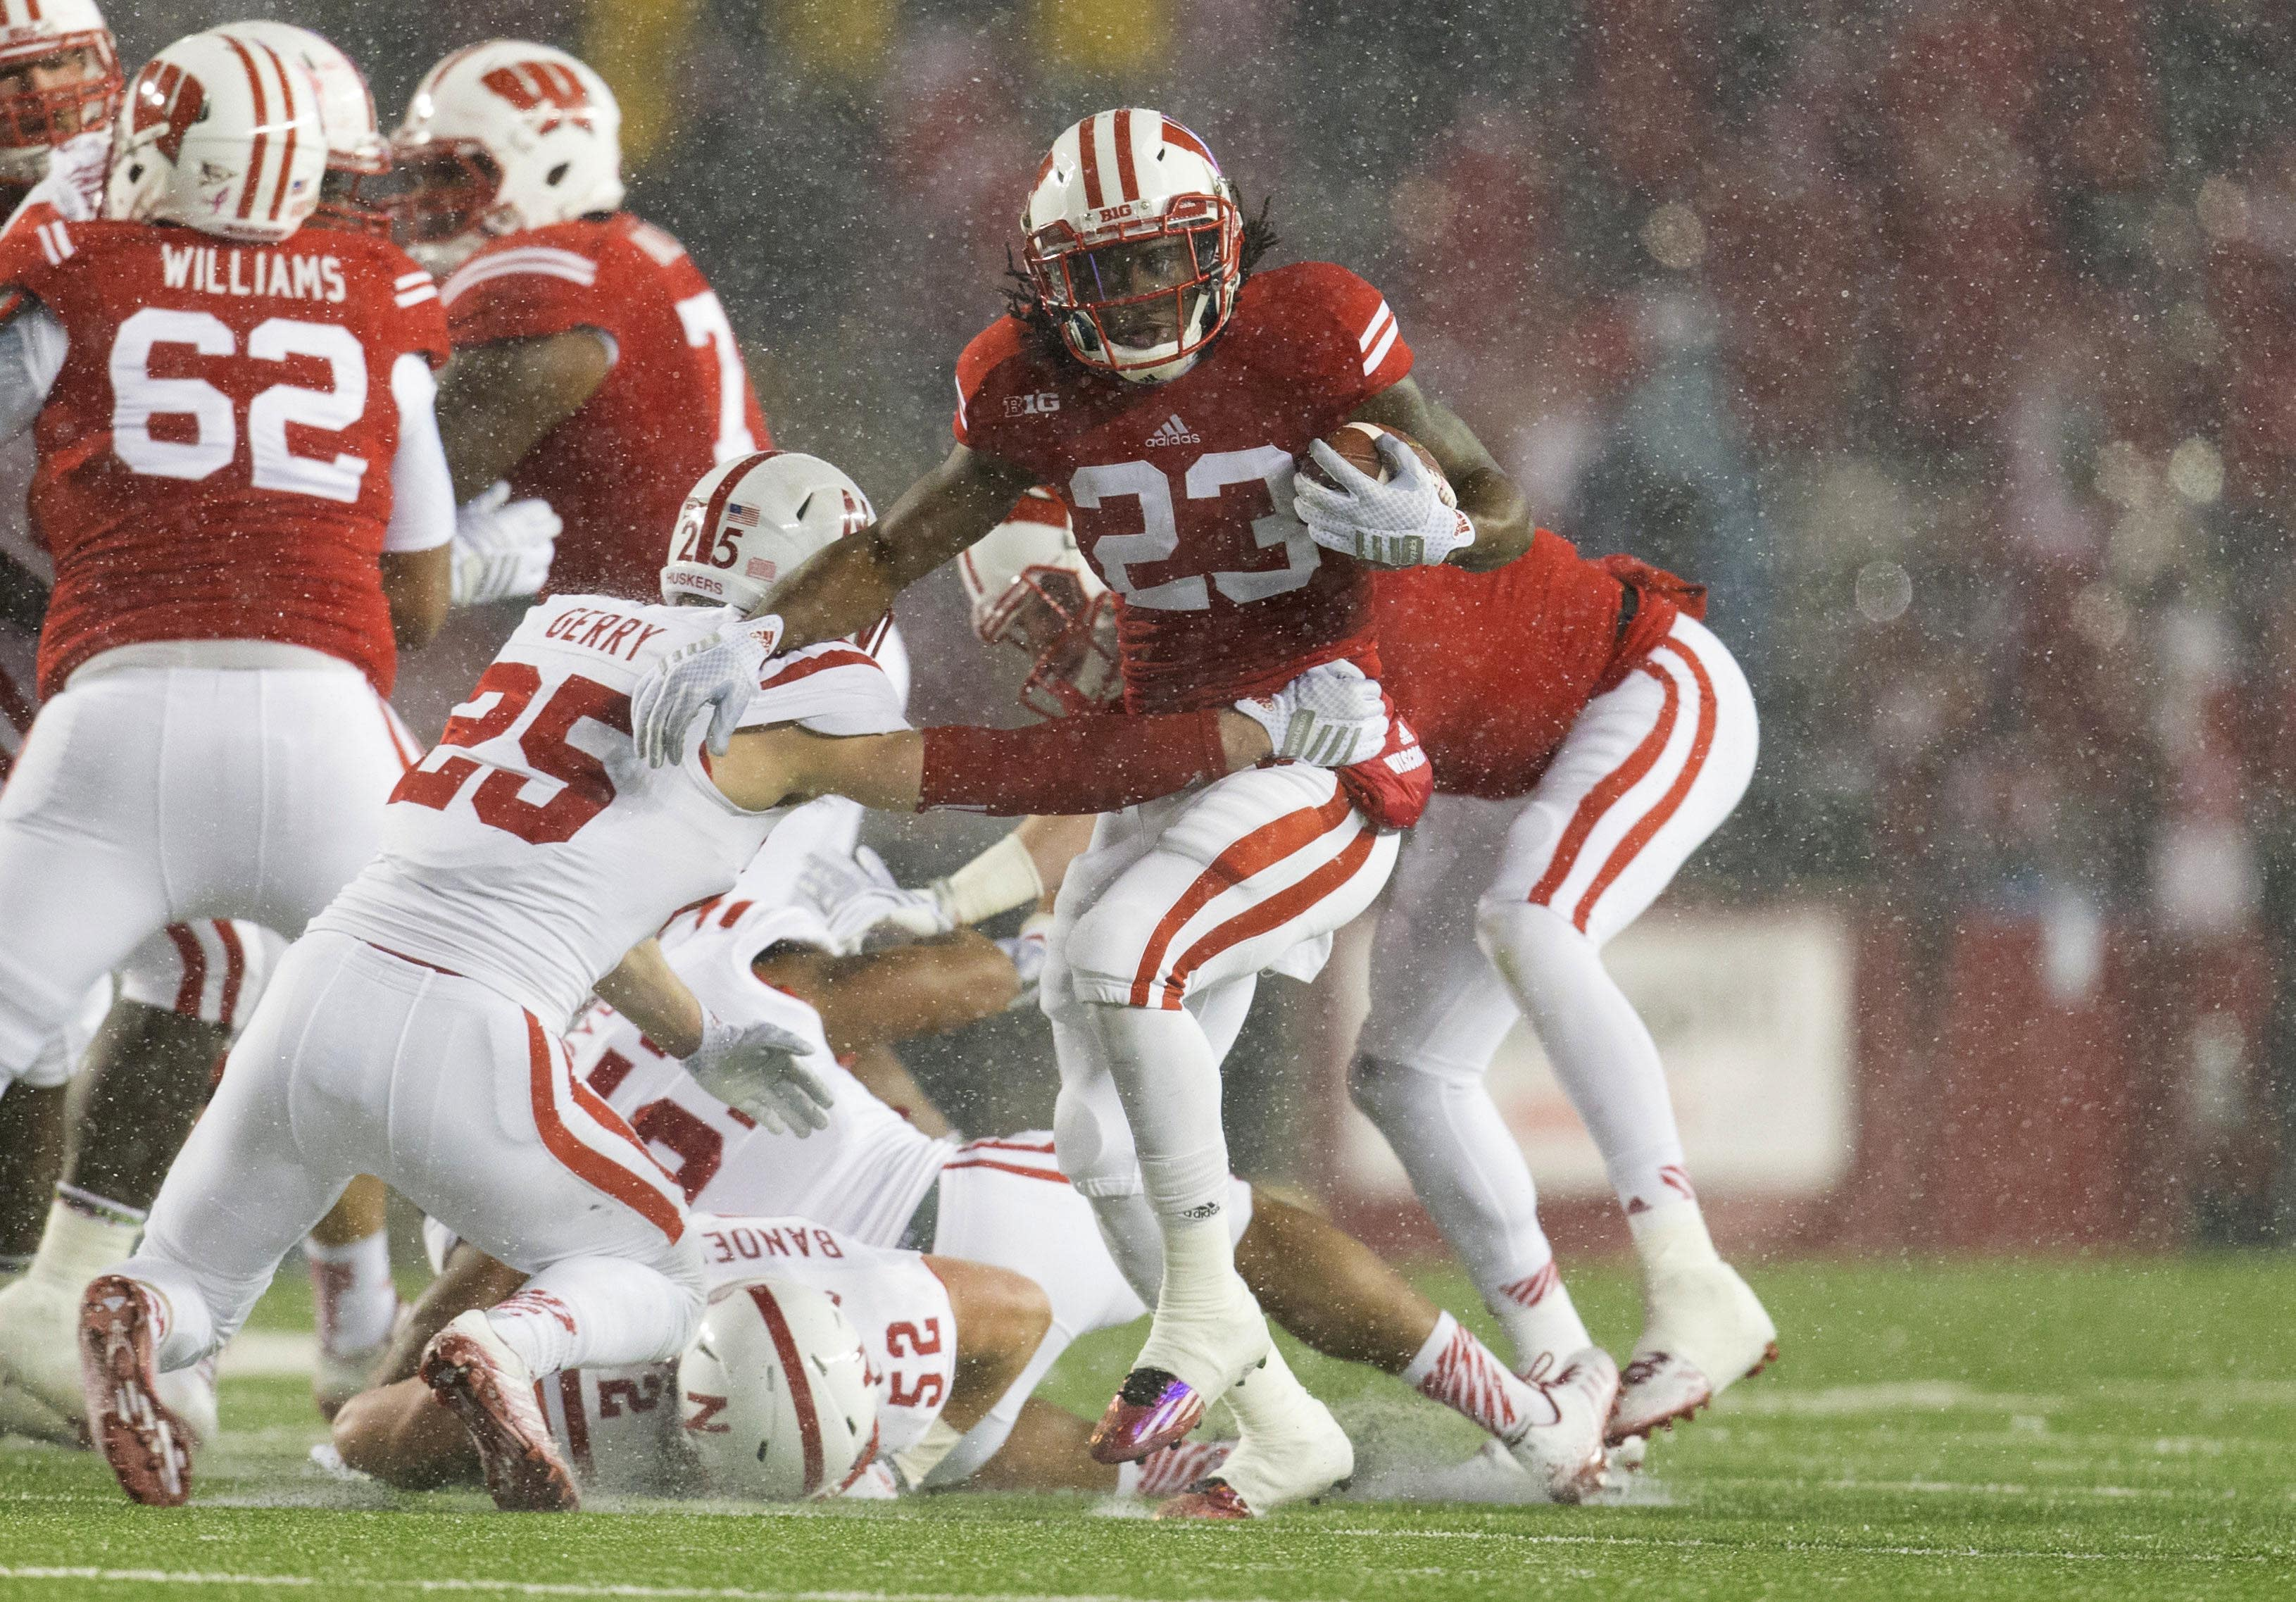 Watch Wisconsin RB Dare Ogunbowale's awesome trick kick